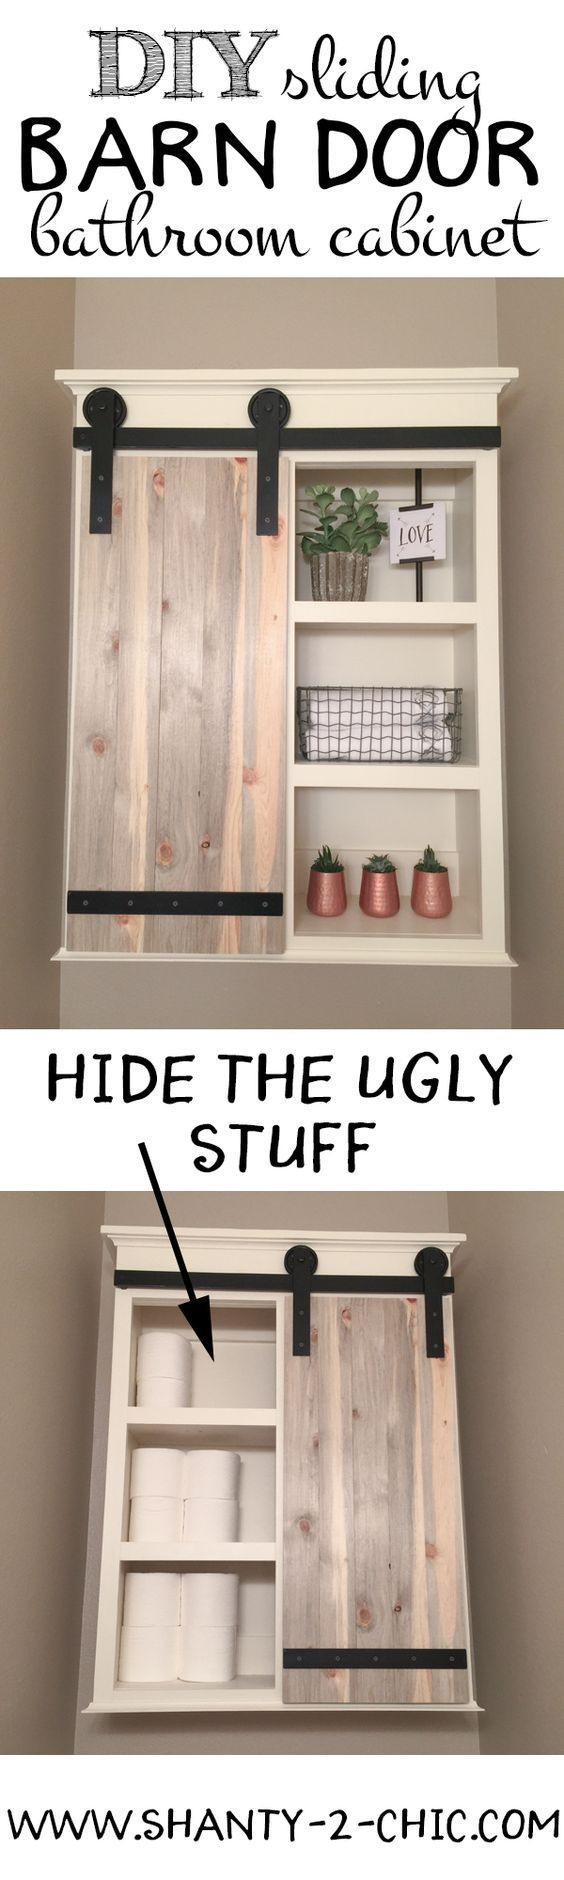 Best 20+ Bathroom Storage Cabinets Ideas On Pinterest—no Signup Required   Diy Bathroom Cabinets, Bathroom Cabinets And Shelves And Farmhouse Storage